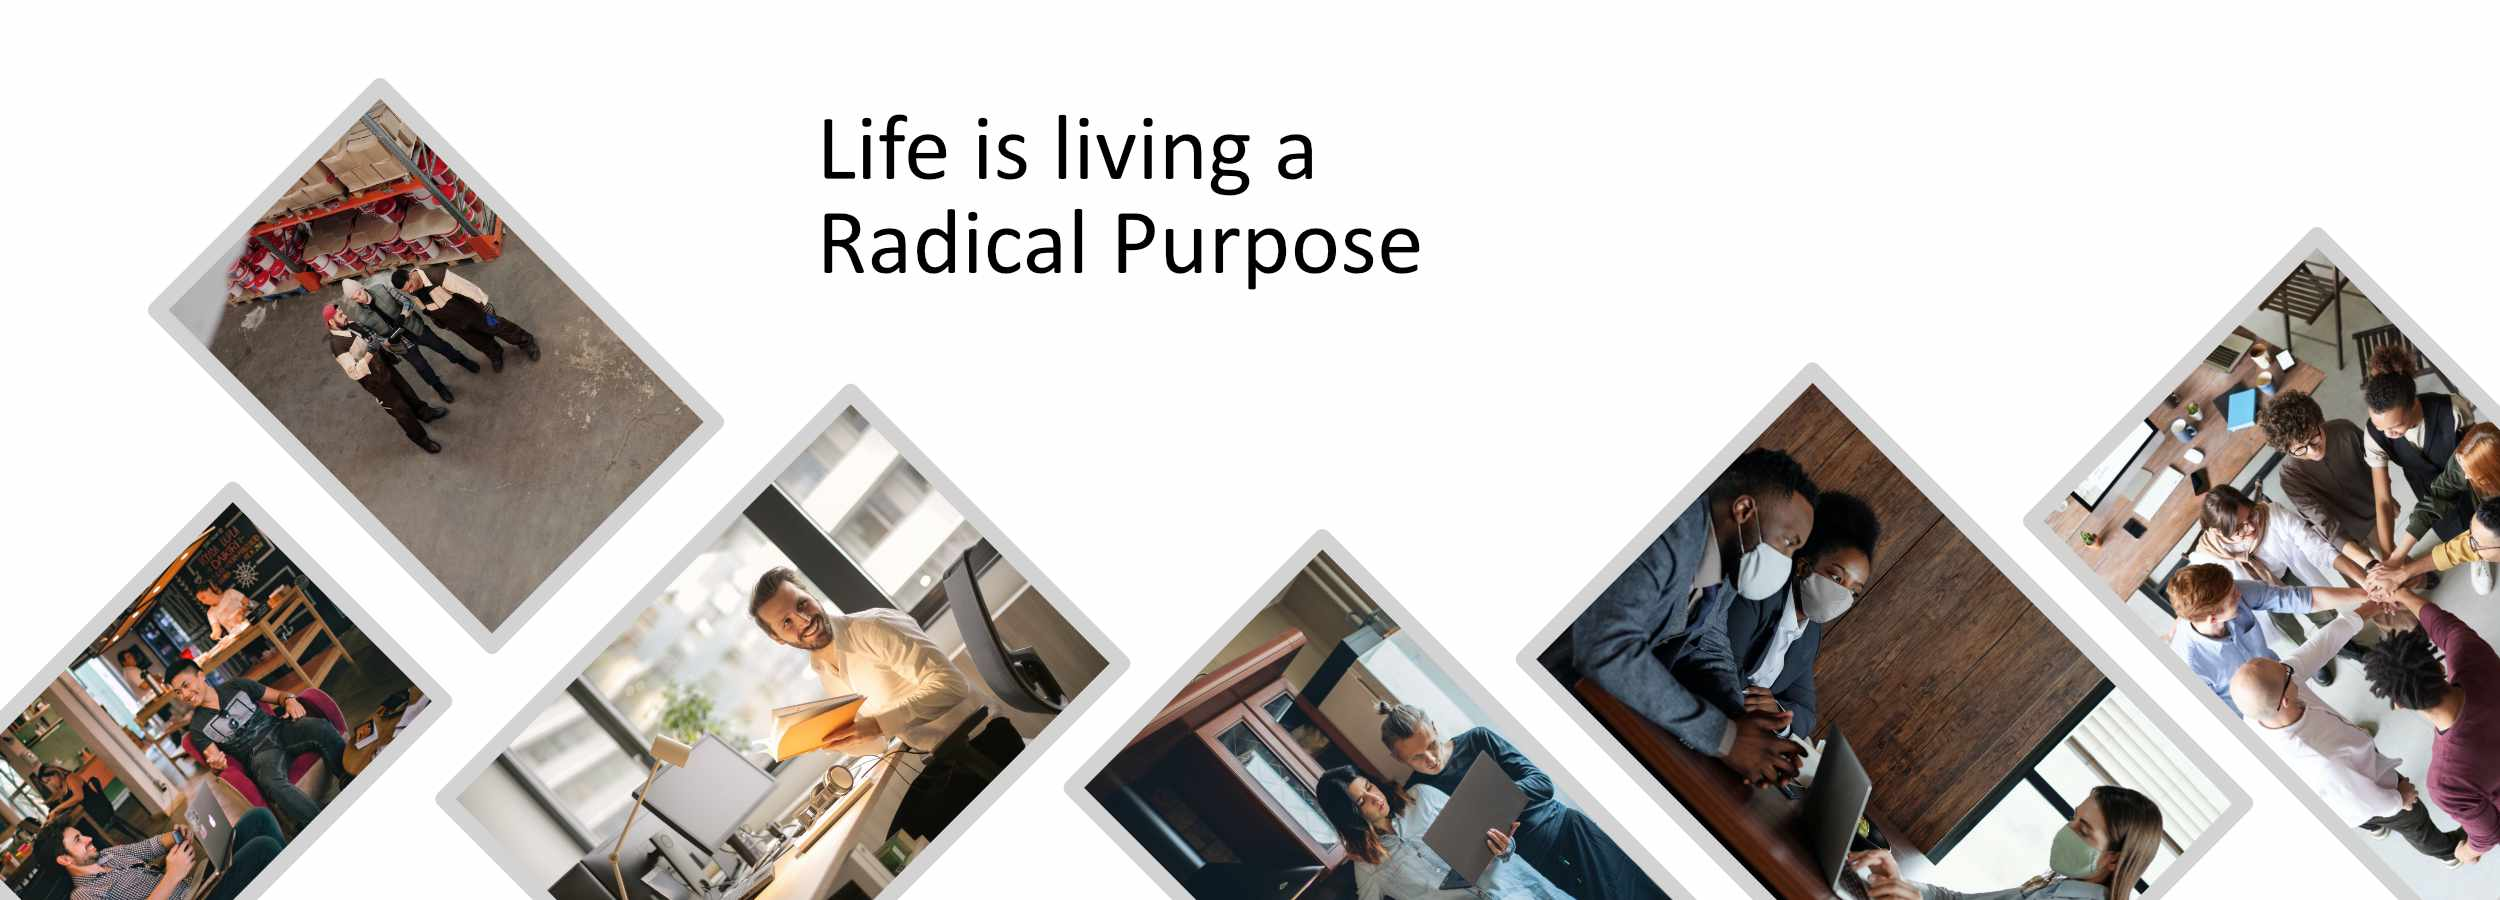 Life is living a Radical Purpose footer graphic